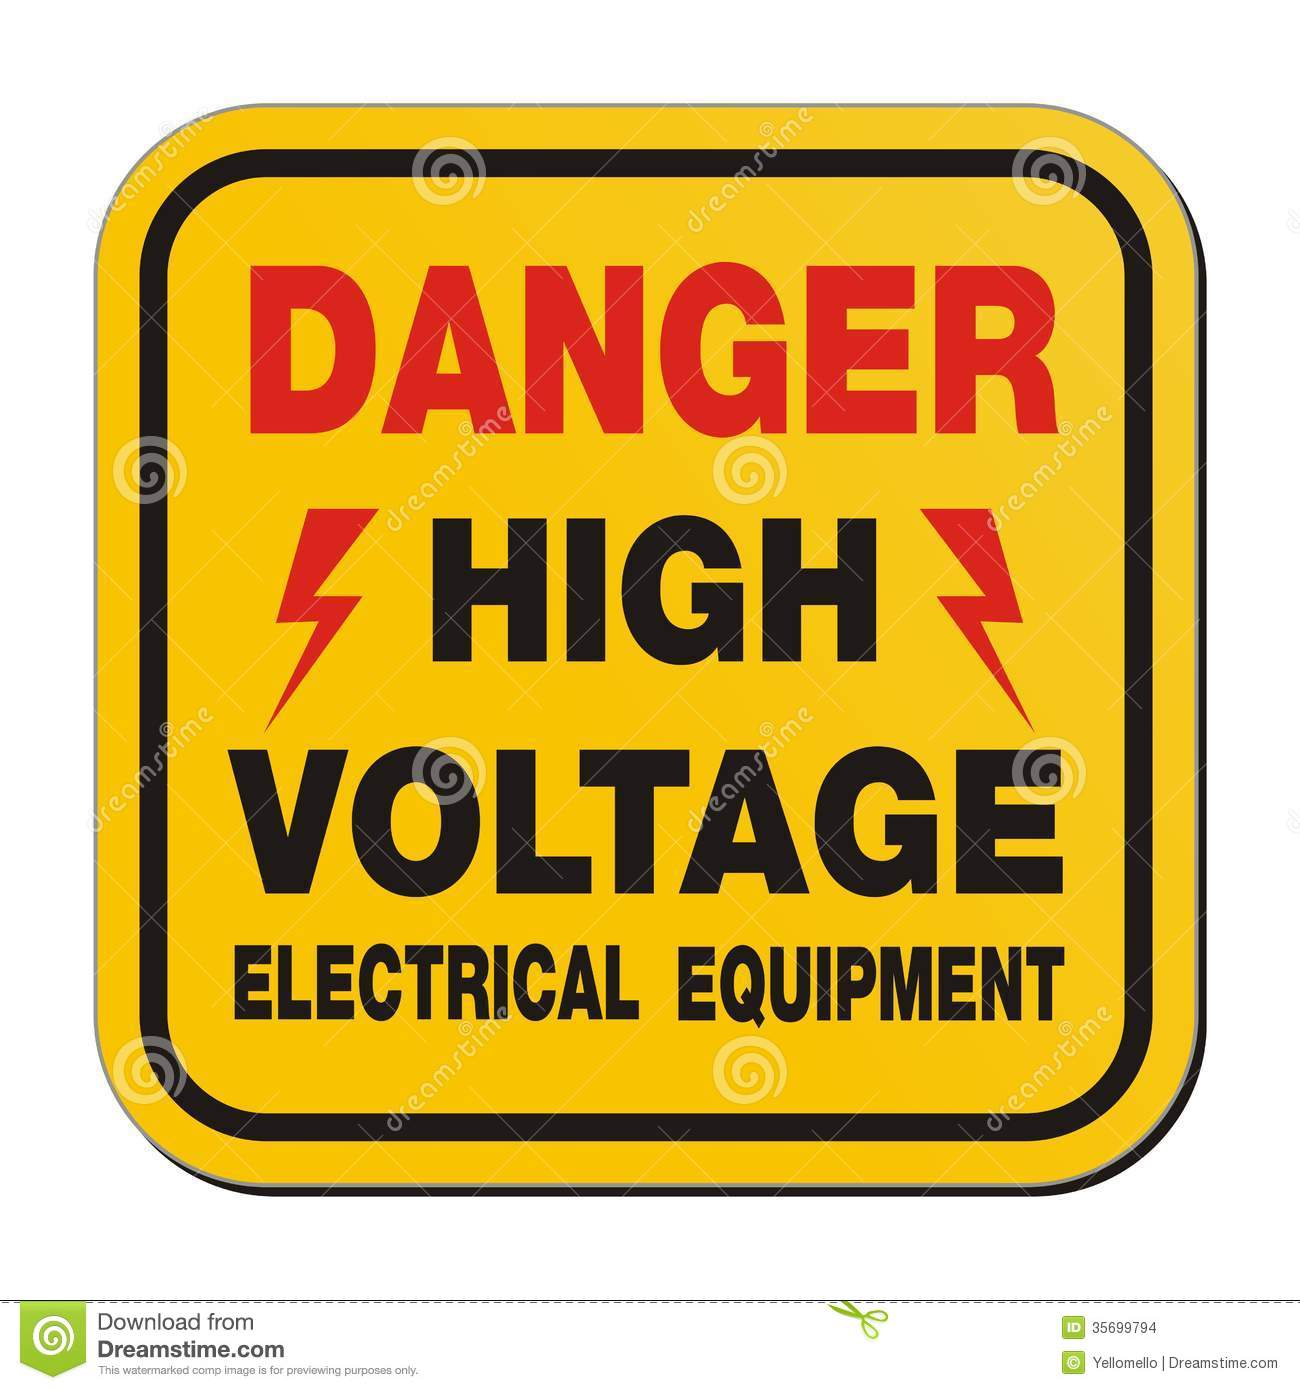 Danger High Voltage Electrical Equipment - Yellow Sign Stock